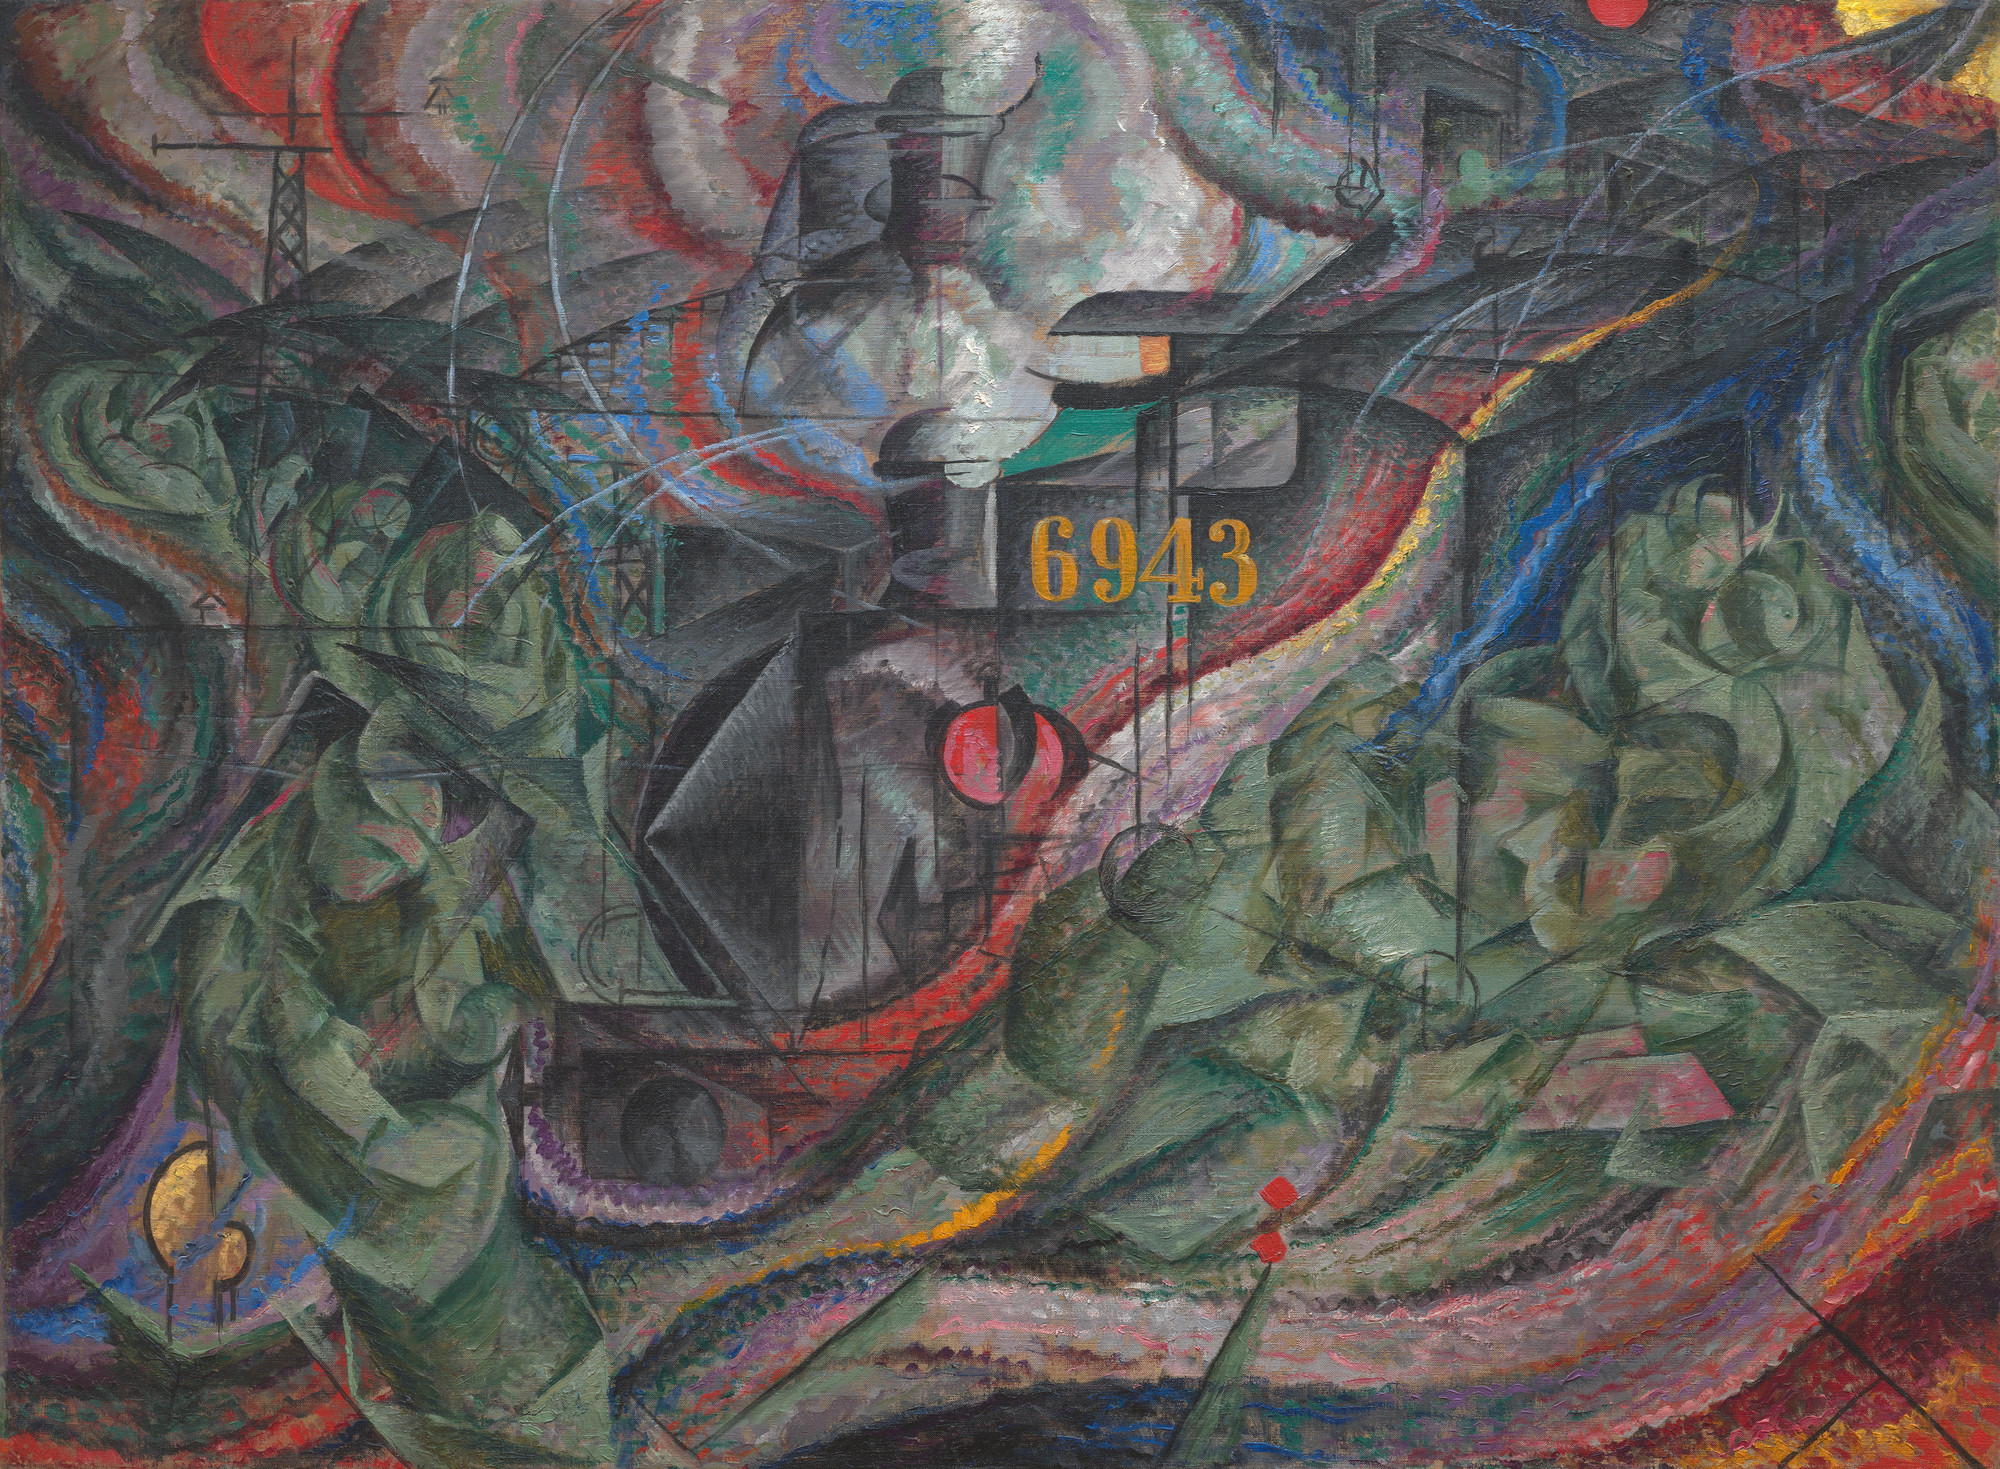 Umberto Boccioni. States of Mind I: The Farewells. 1911